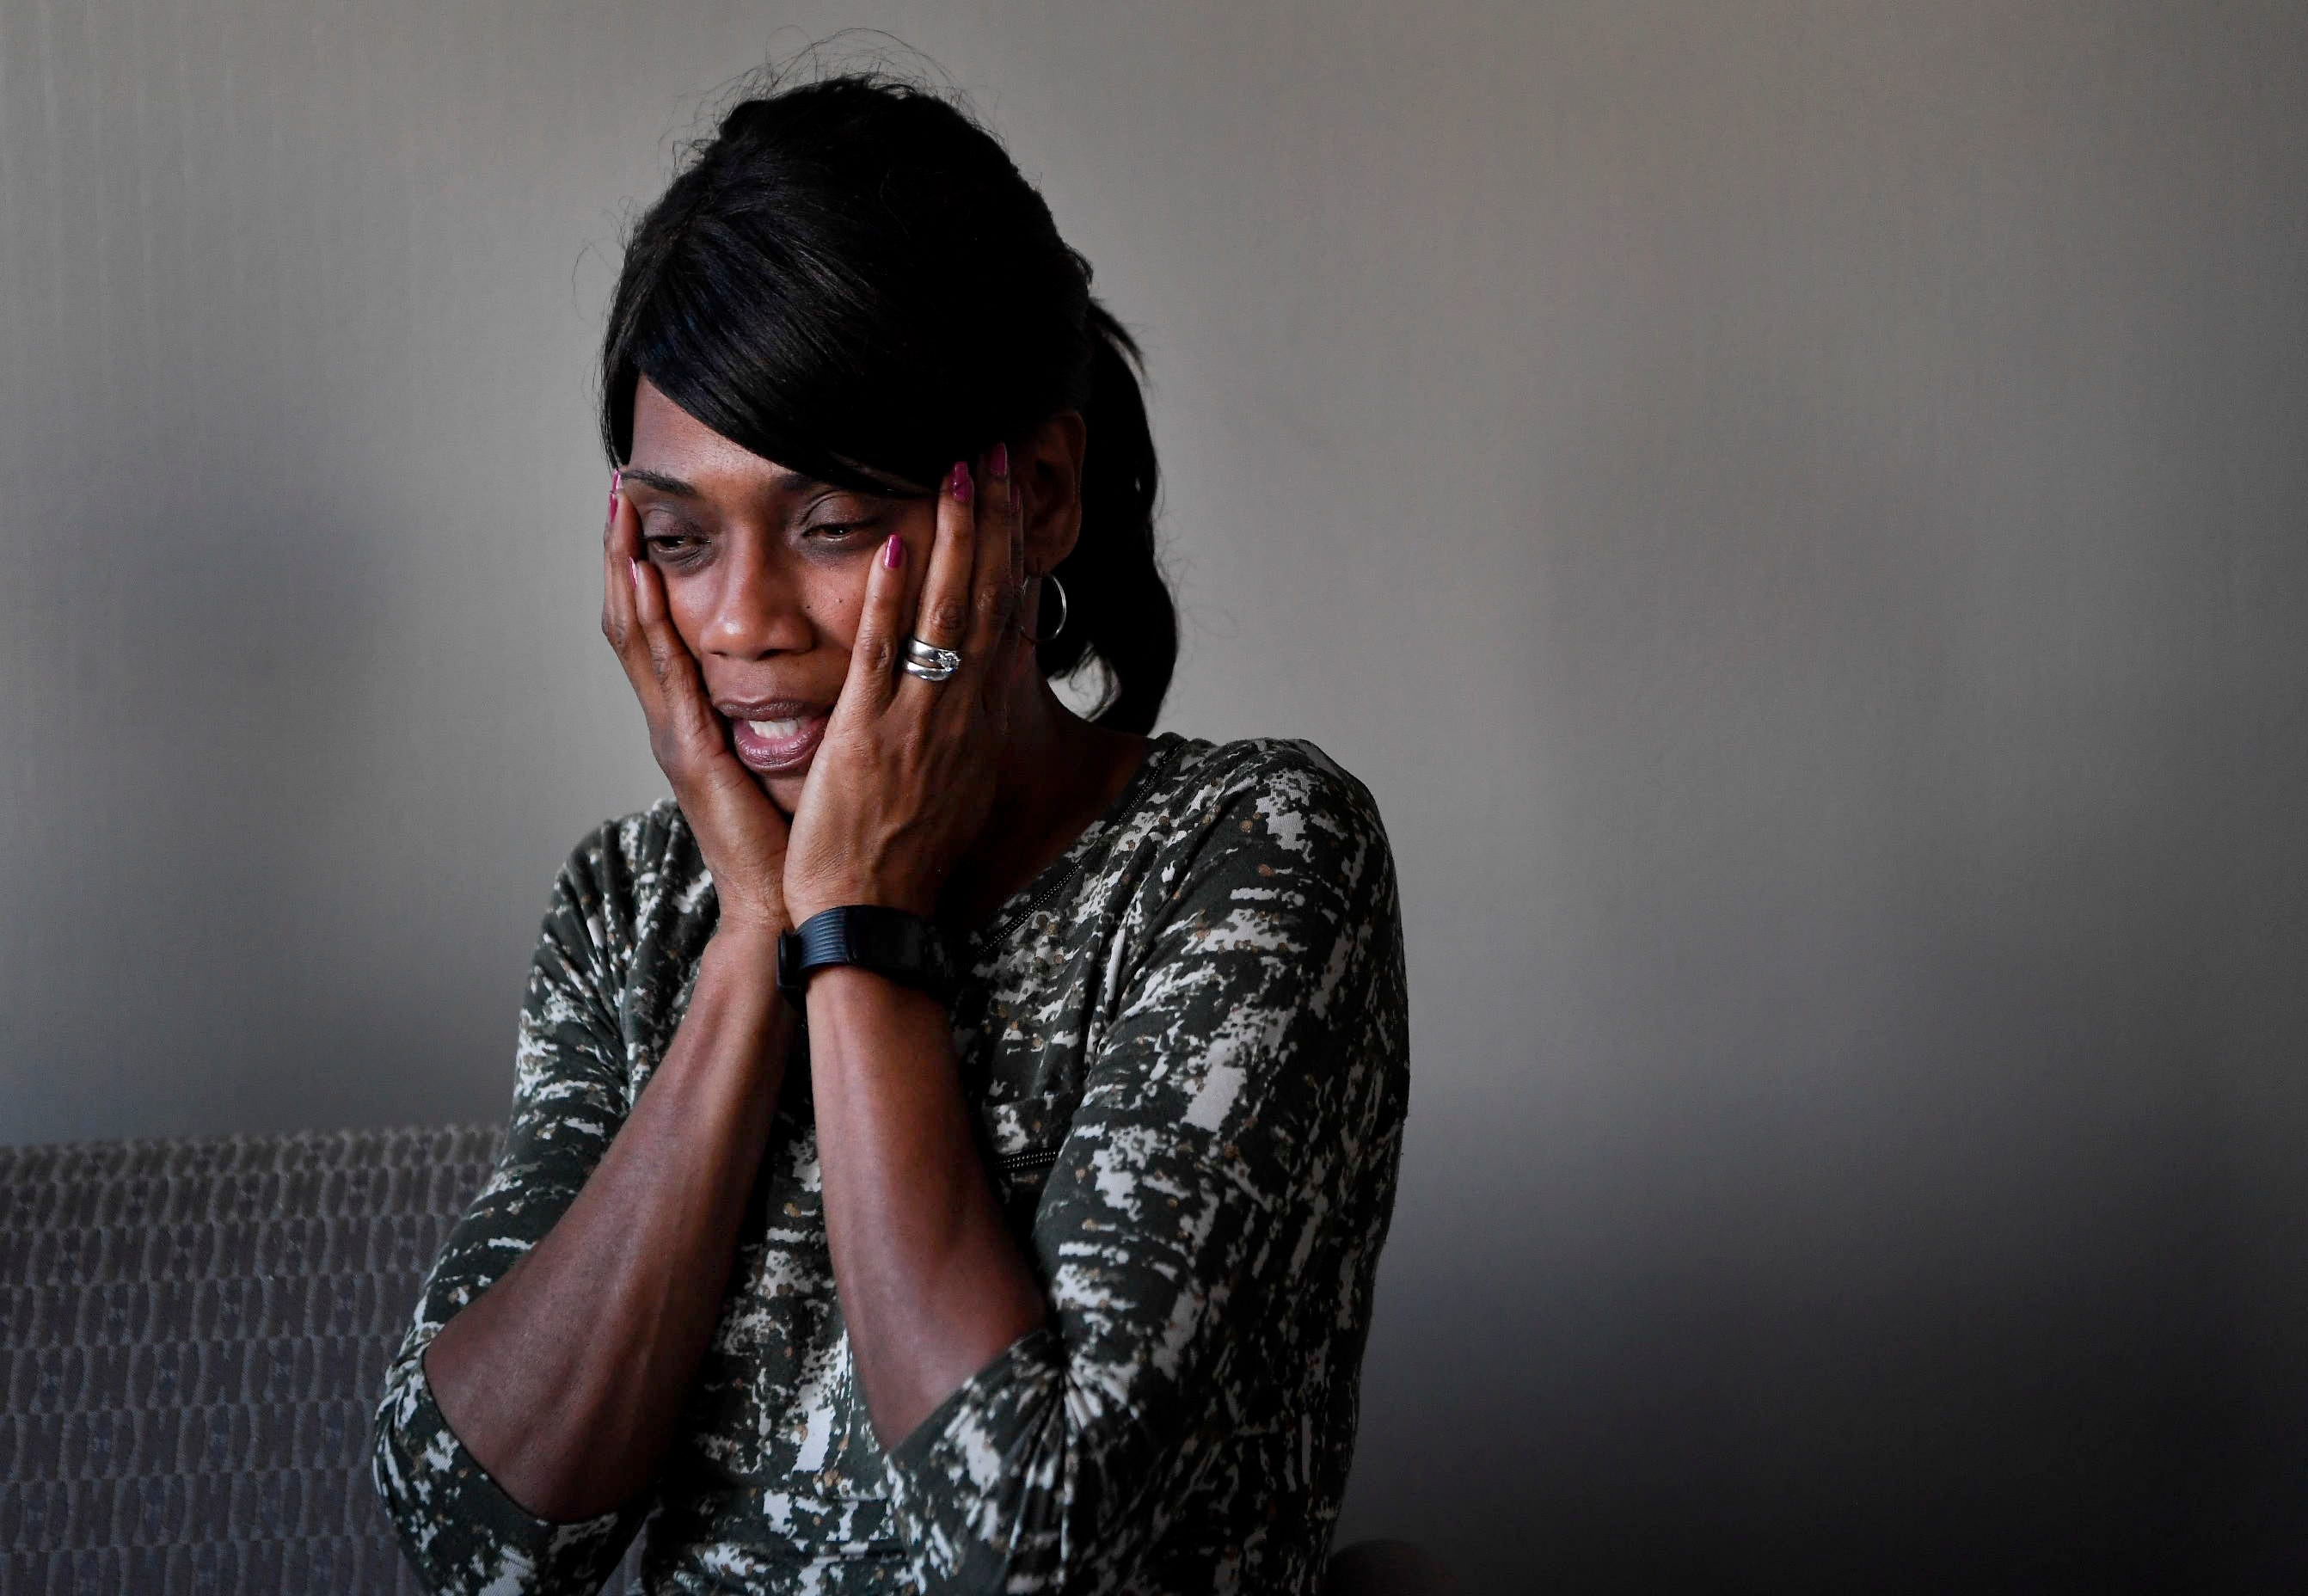 """Shirl Baker, mother of Waffle House shooting victim DeEbony Groves, cries every morning. """"It sometimes helps me feel like the weight has been lifted,"""" she said."""